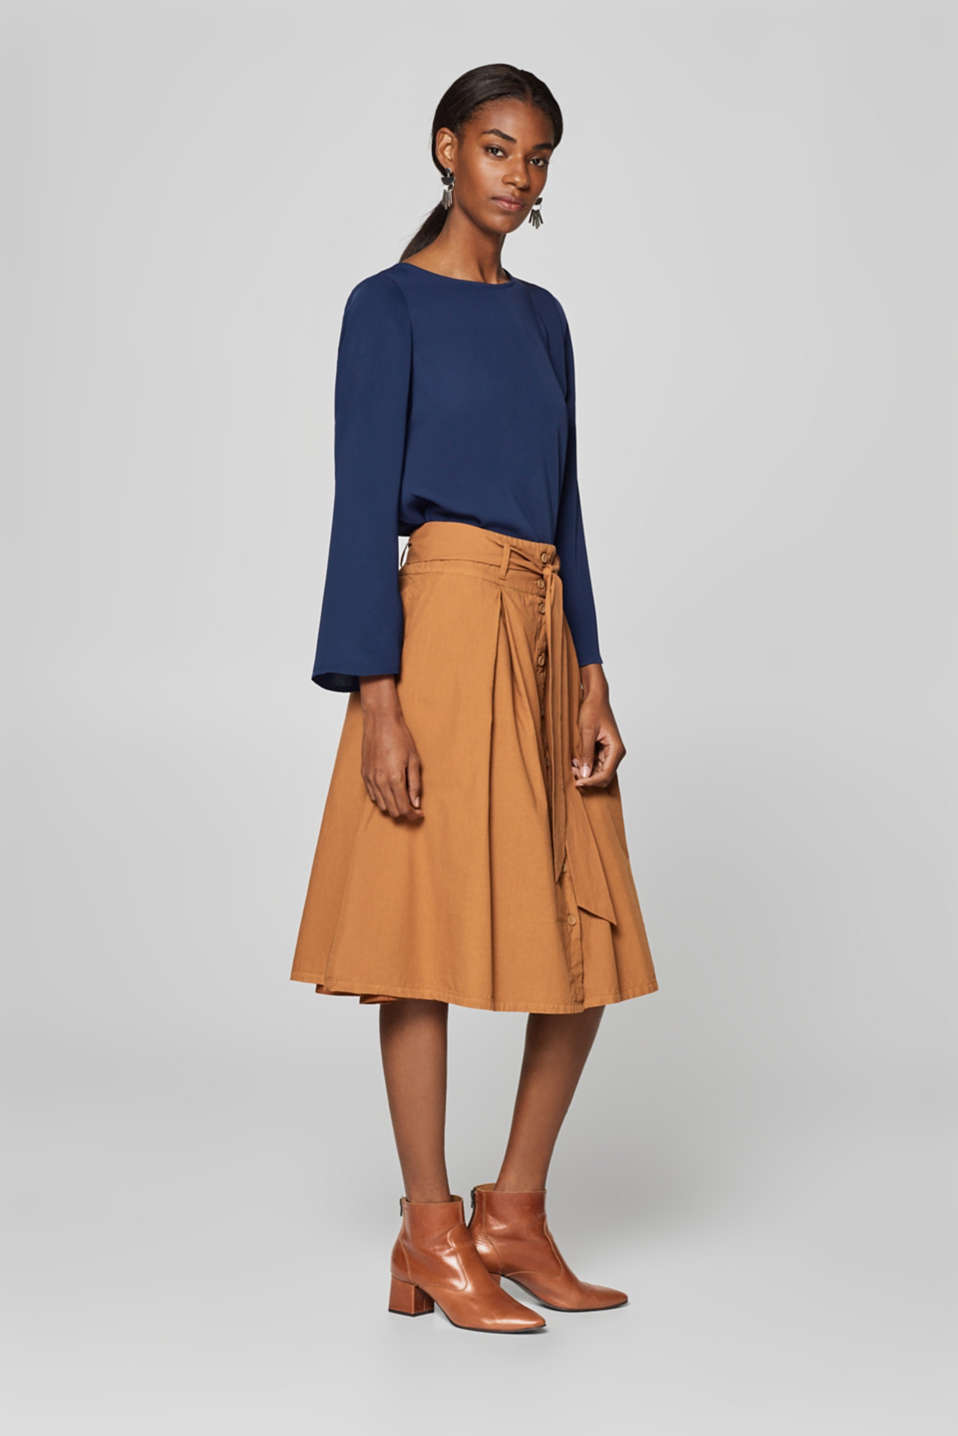 Midi skirt with button placket, 100% cotton